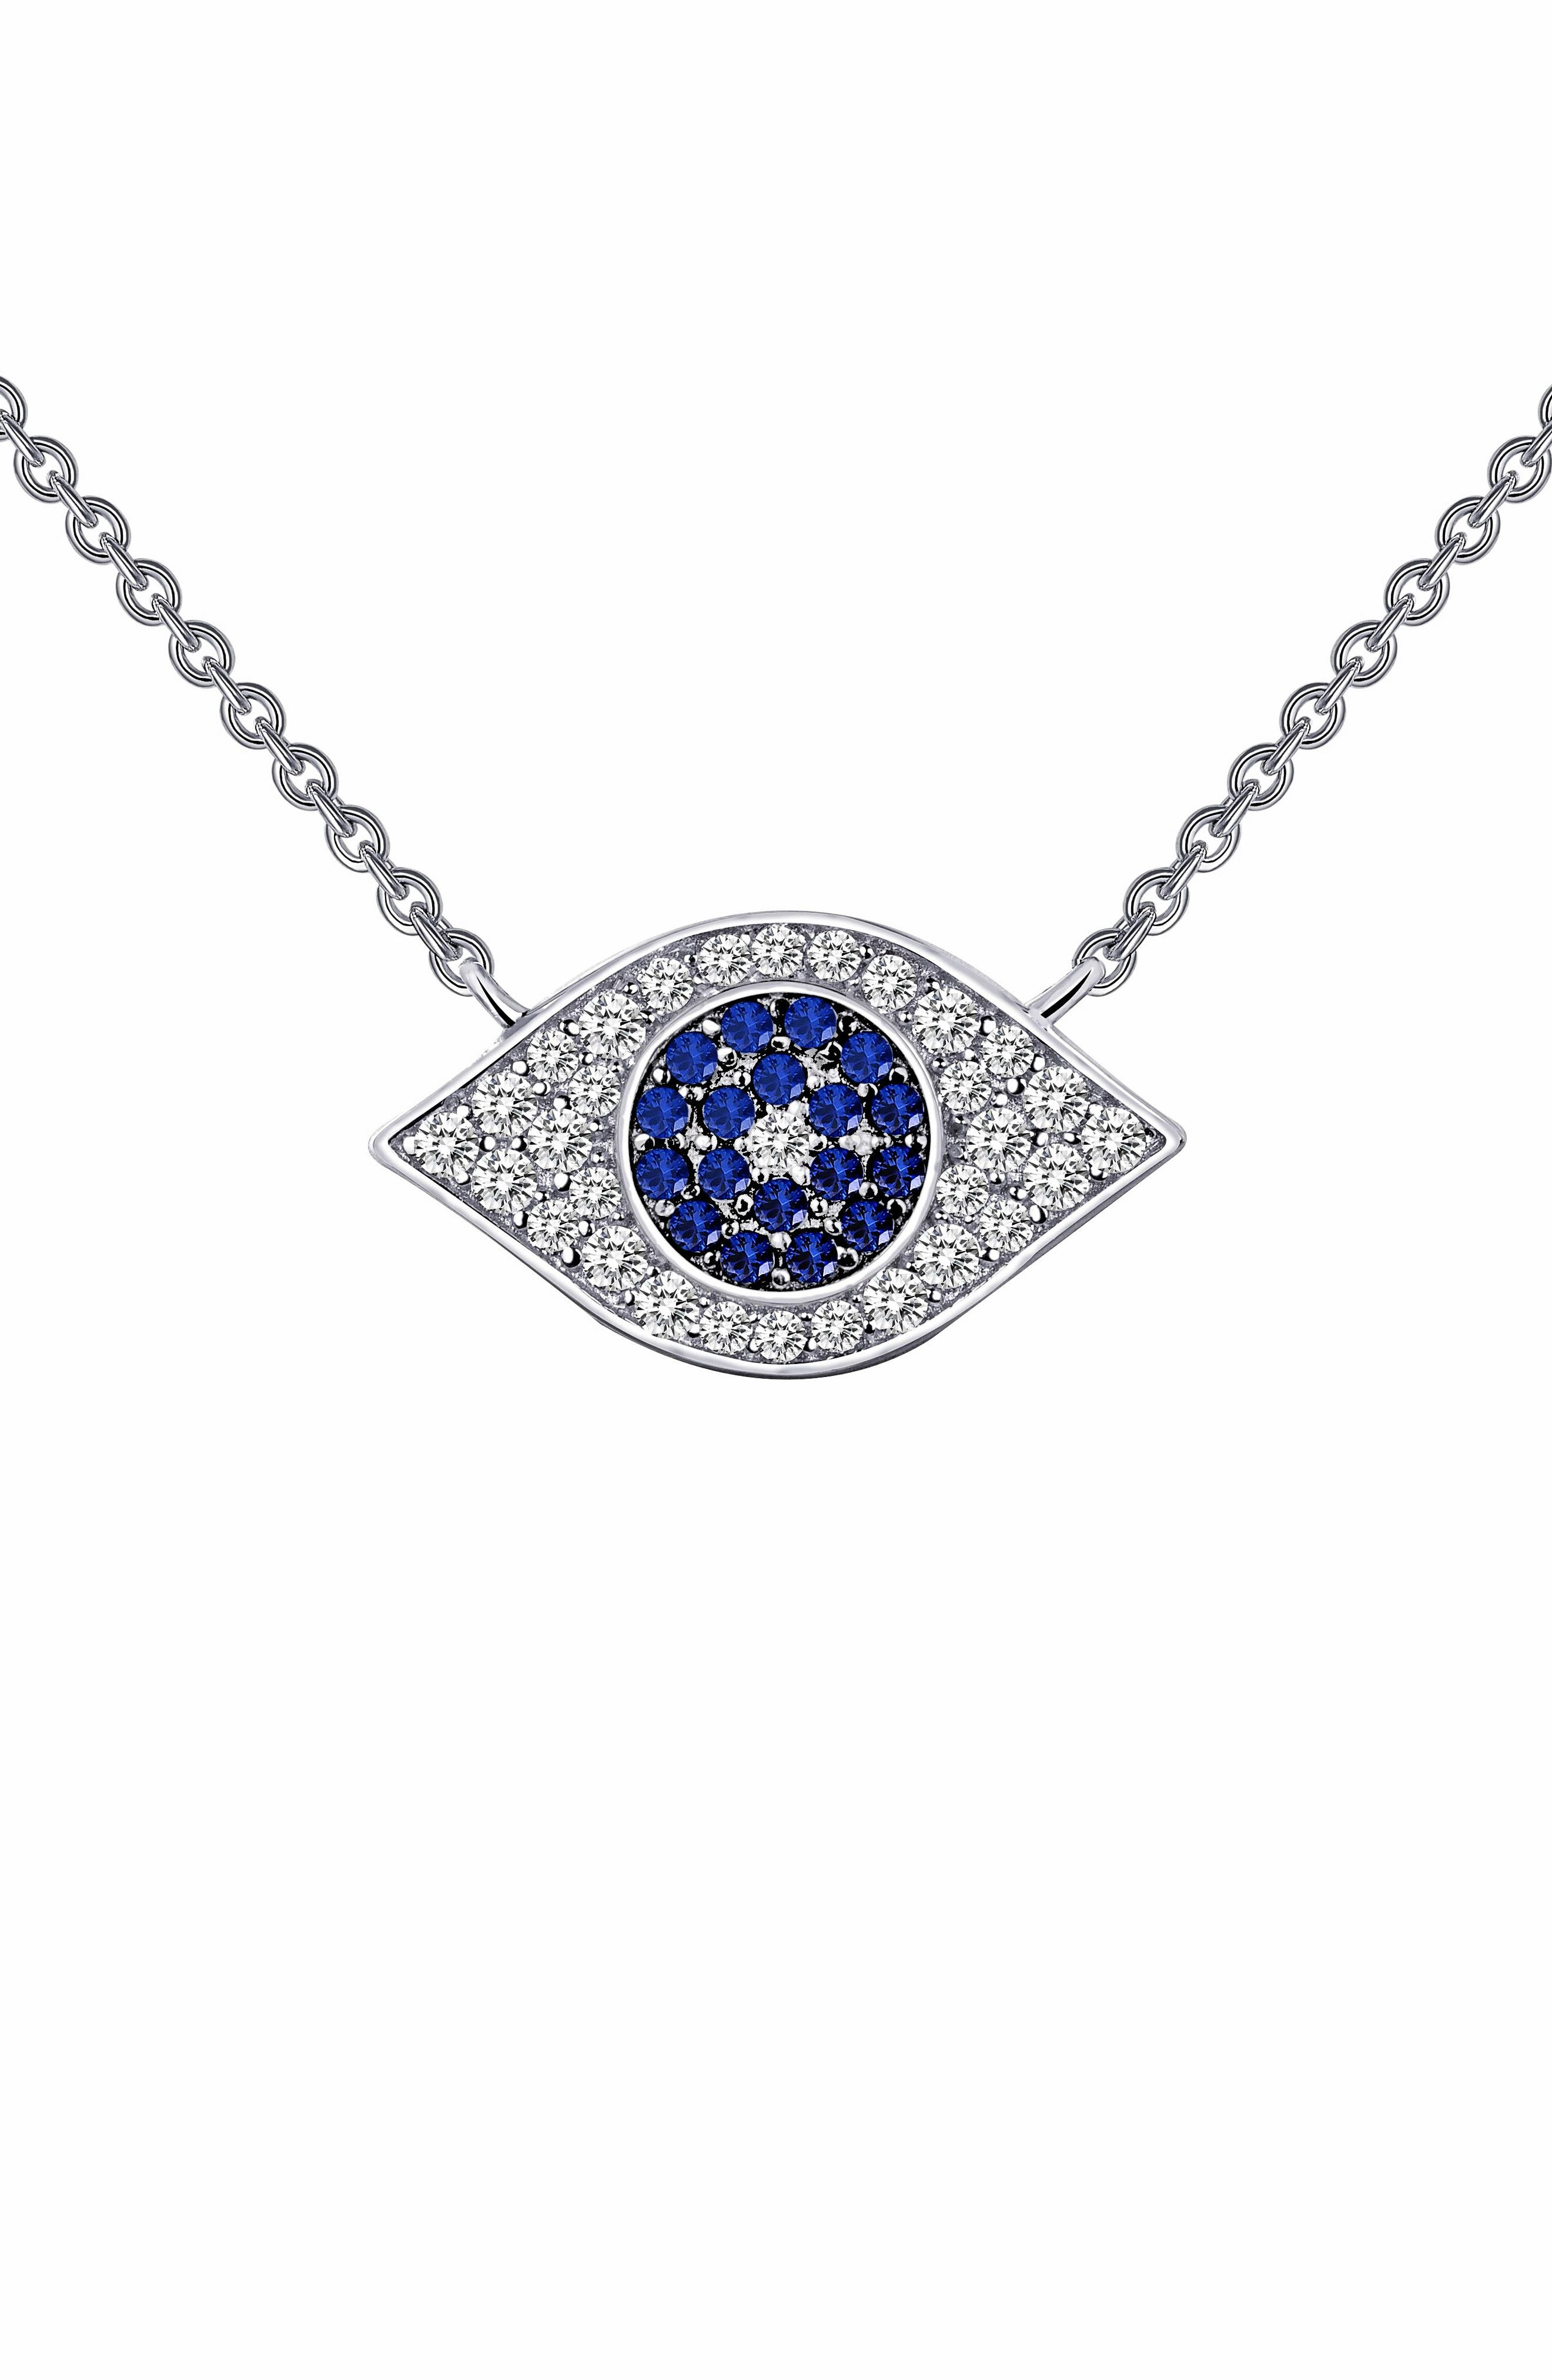 Simulated Diamond Amulet Pendant Necklace,                         Main,                         color, SAPPHIRE / SILVER